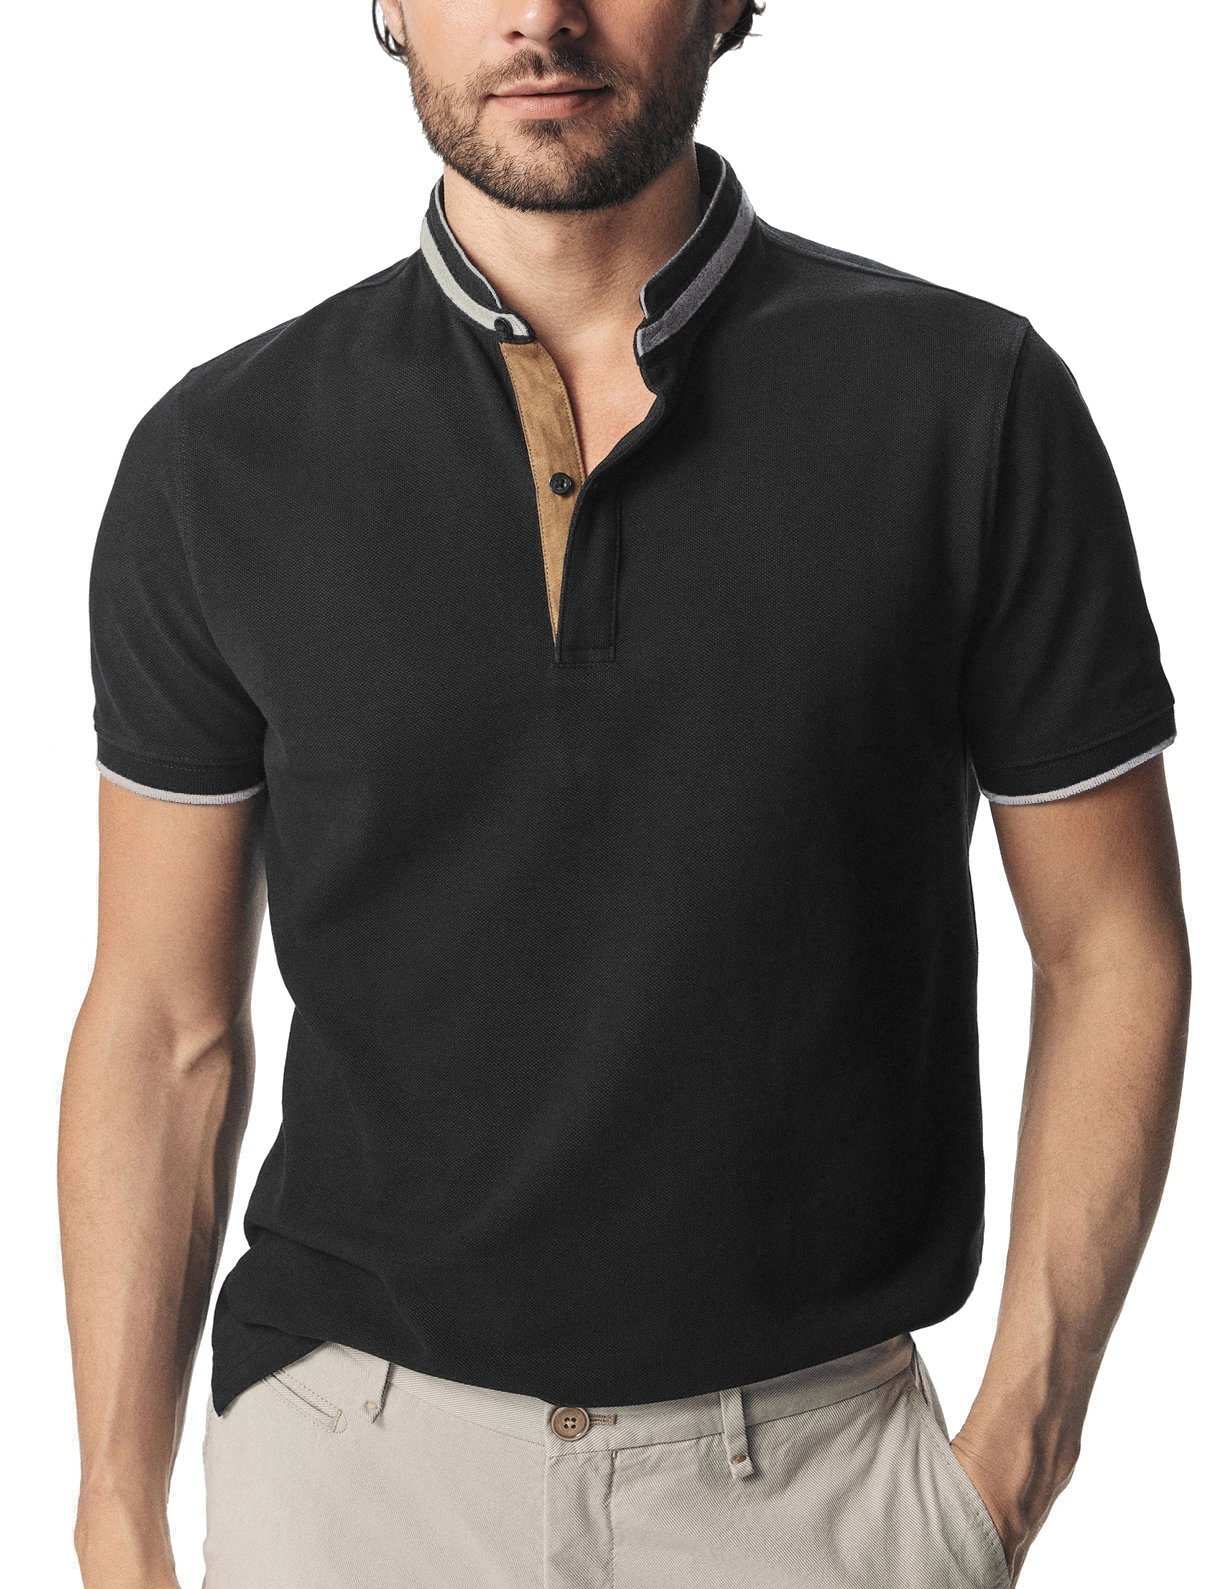 Navifalcon Polo Shirts for Men 100% Cotton Mens Basic Pique Collared T Shirts Casual Slim Fit Black XL